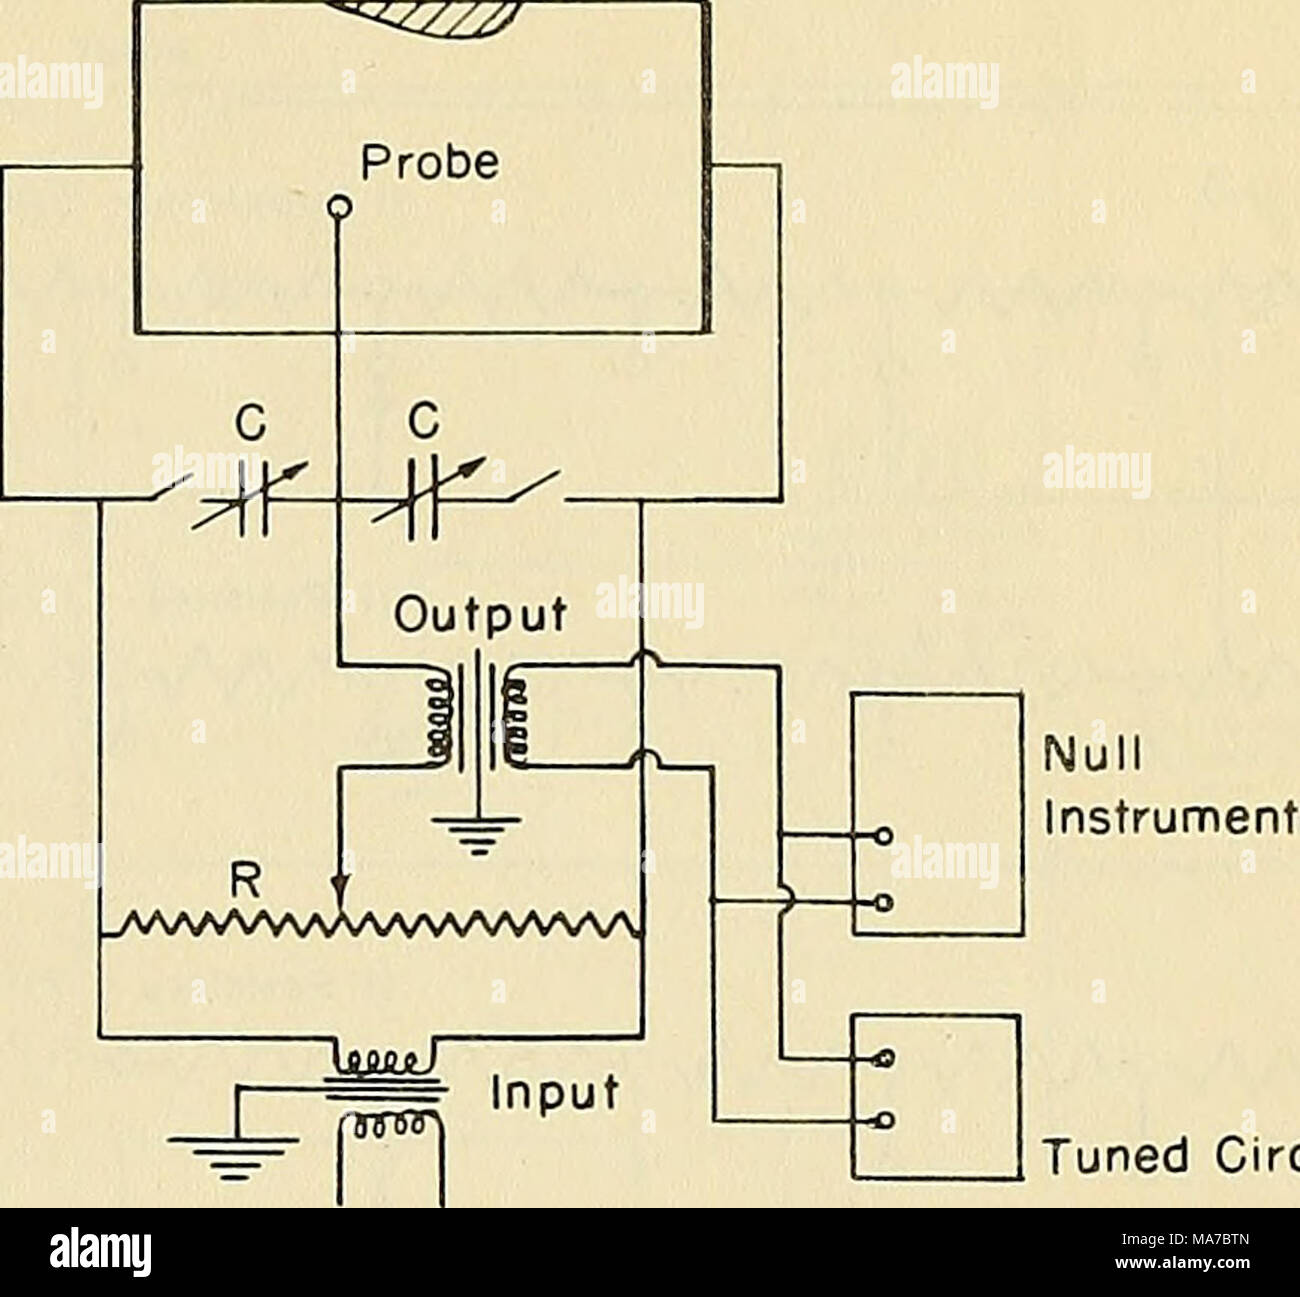 Wiring Diagram Stock Photos Images Alamy Electrical Diagrams And Schematics Reading An Electrolytic Tank Developed For Obtaining Velocity Pressure Distributions About Hydrodynamic Forms Tuned